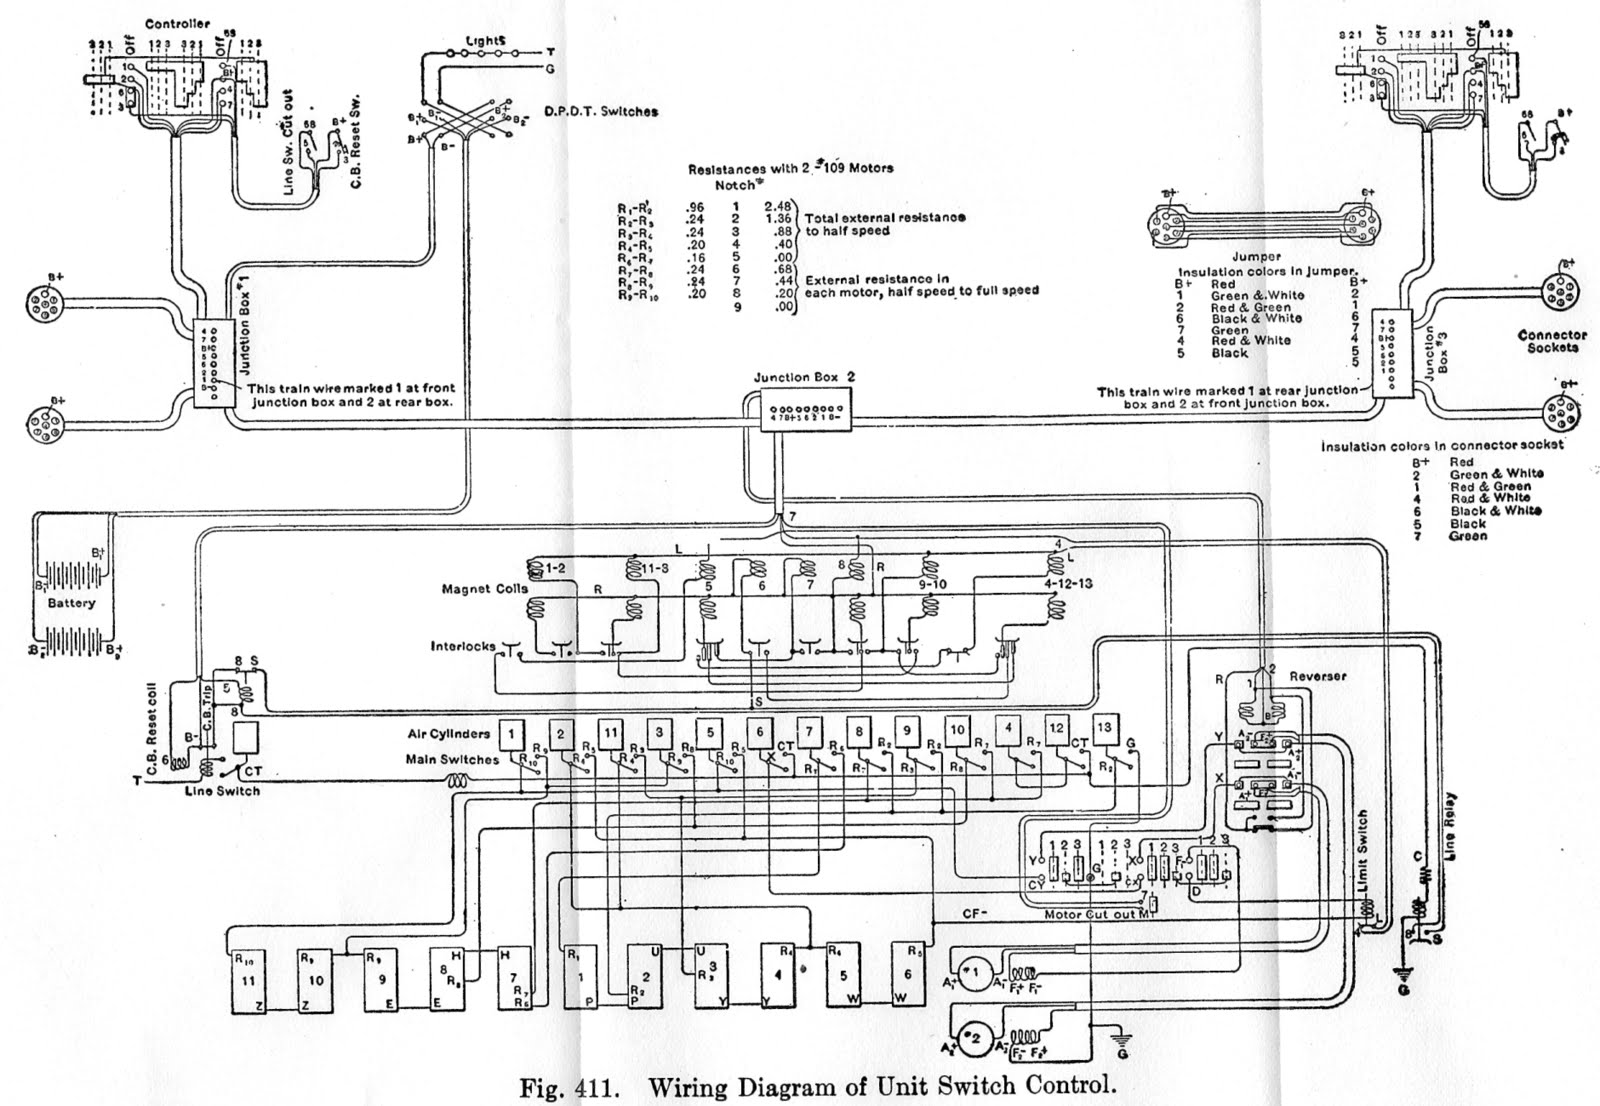 Hicks car works control circuit diagrams asfbconference2016 Image collections